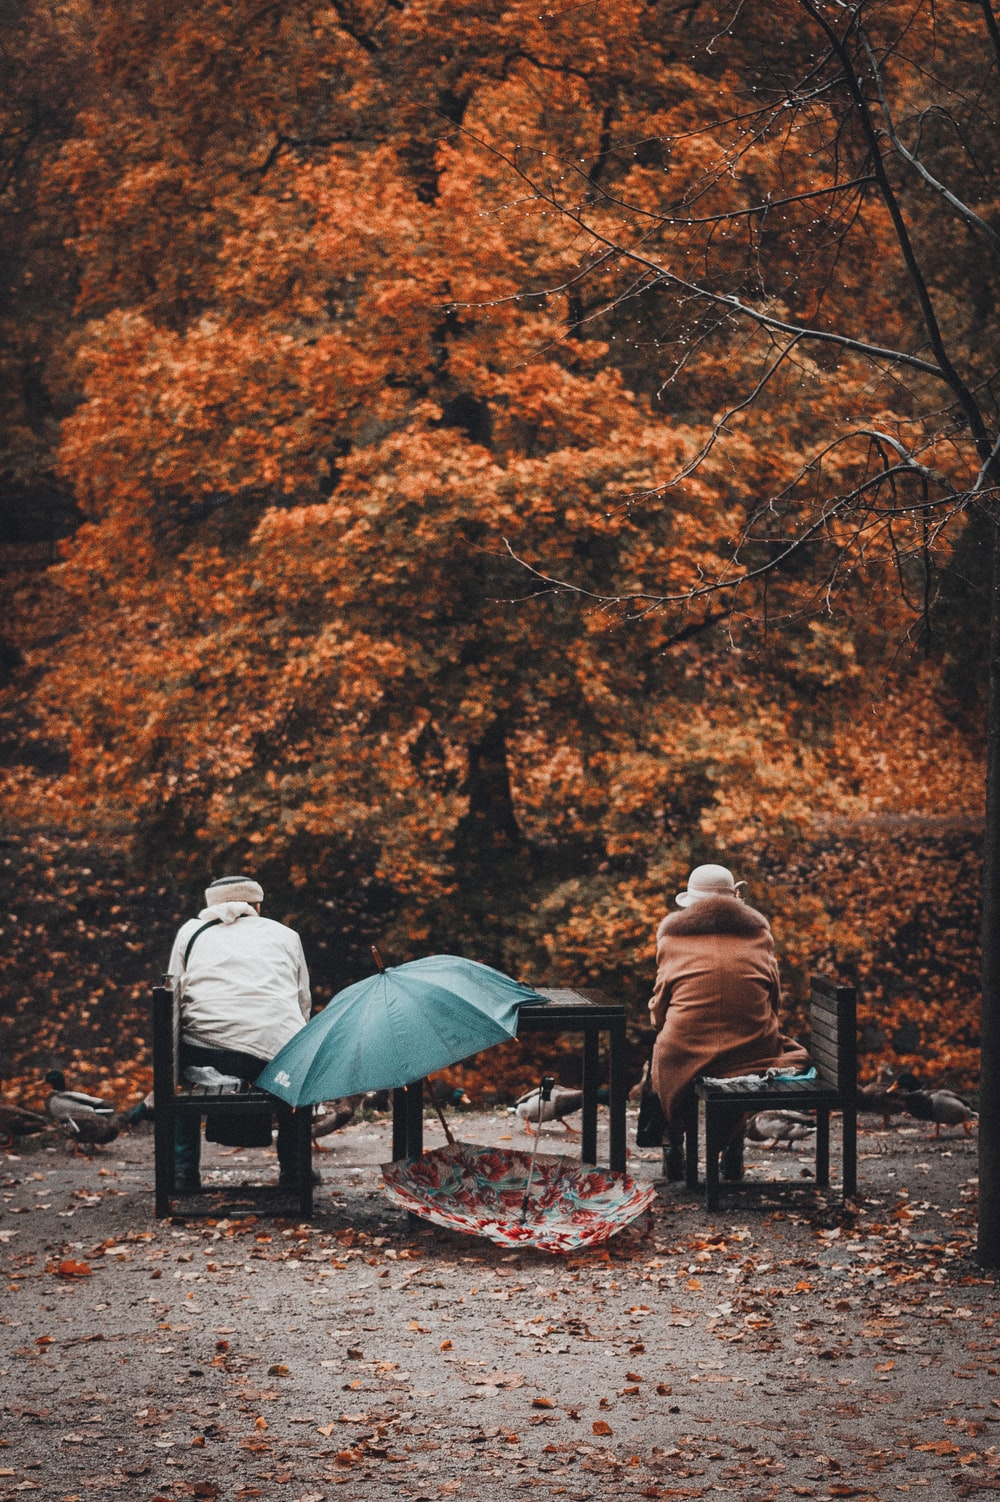 two person sitting on bench with two umbrellas